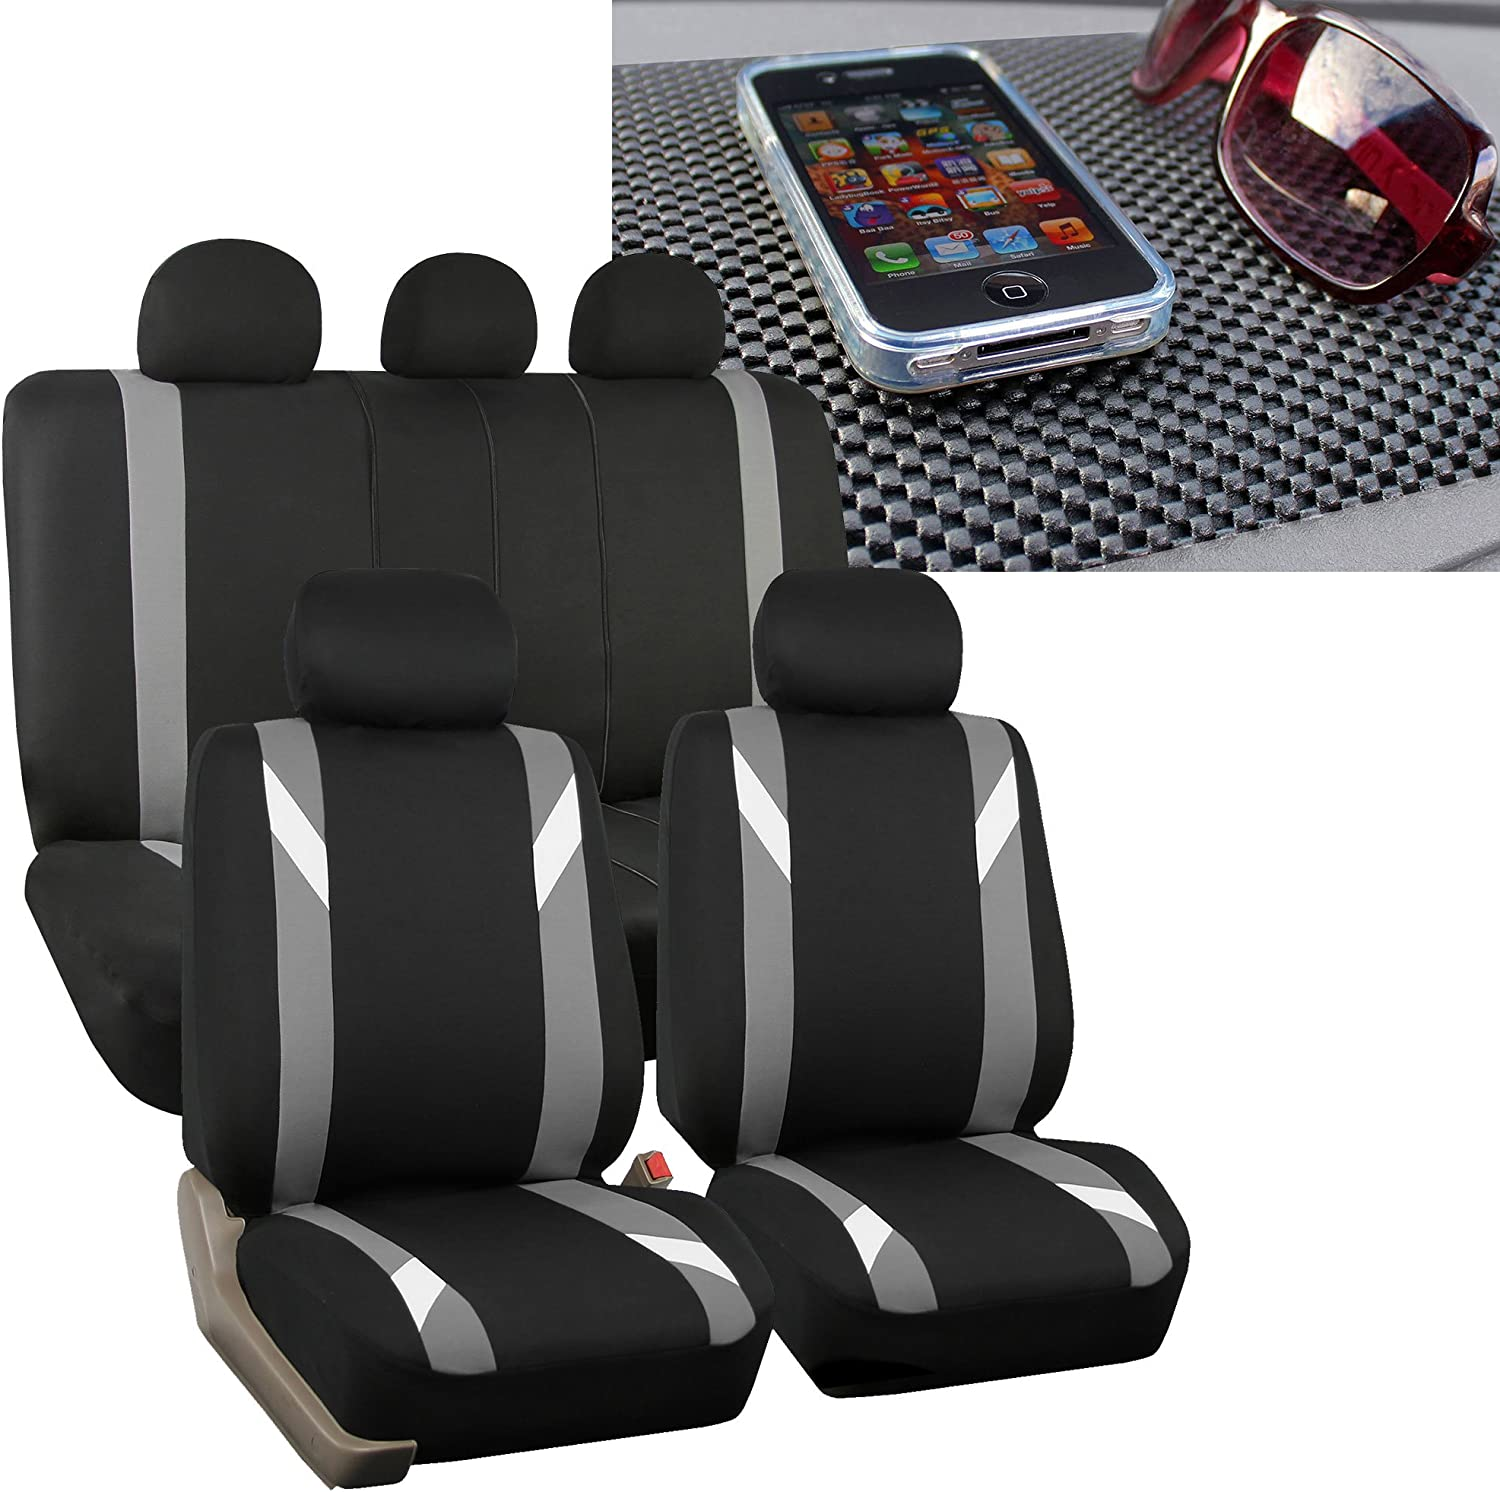 FH Group FH-FB033115 Three Row-Premium Modernistic Seat Covers Gray/Black FH1002 Non-Slip Dash Pad- Fit Most Car, Truck, SUV, or Van